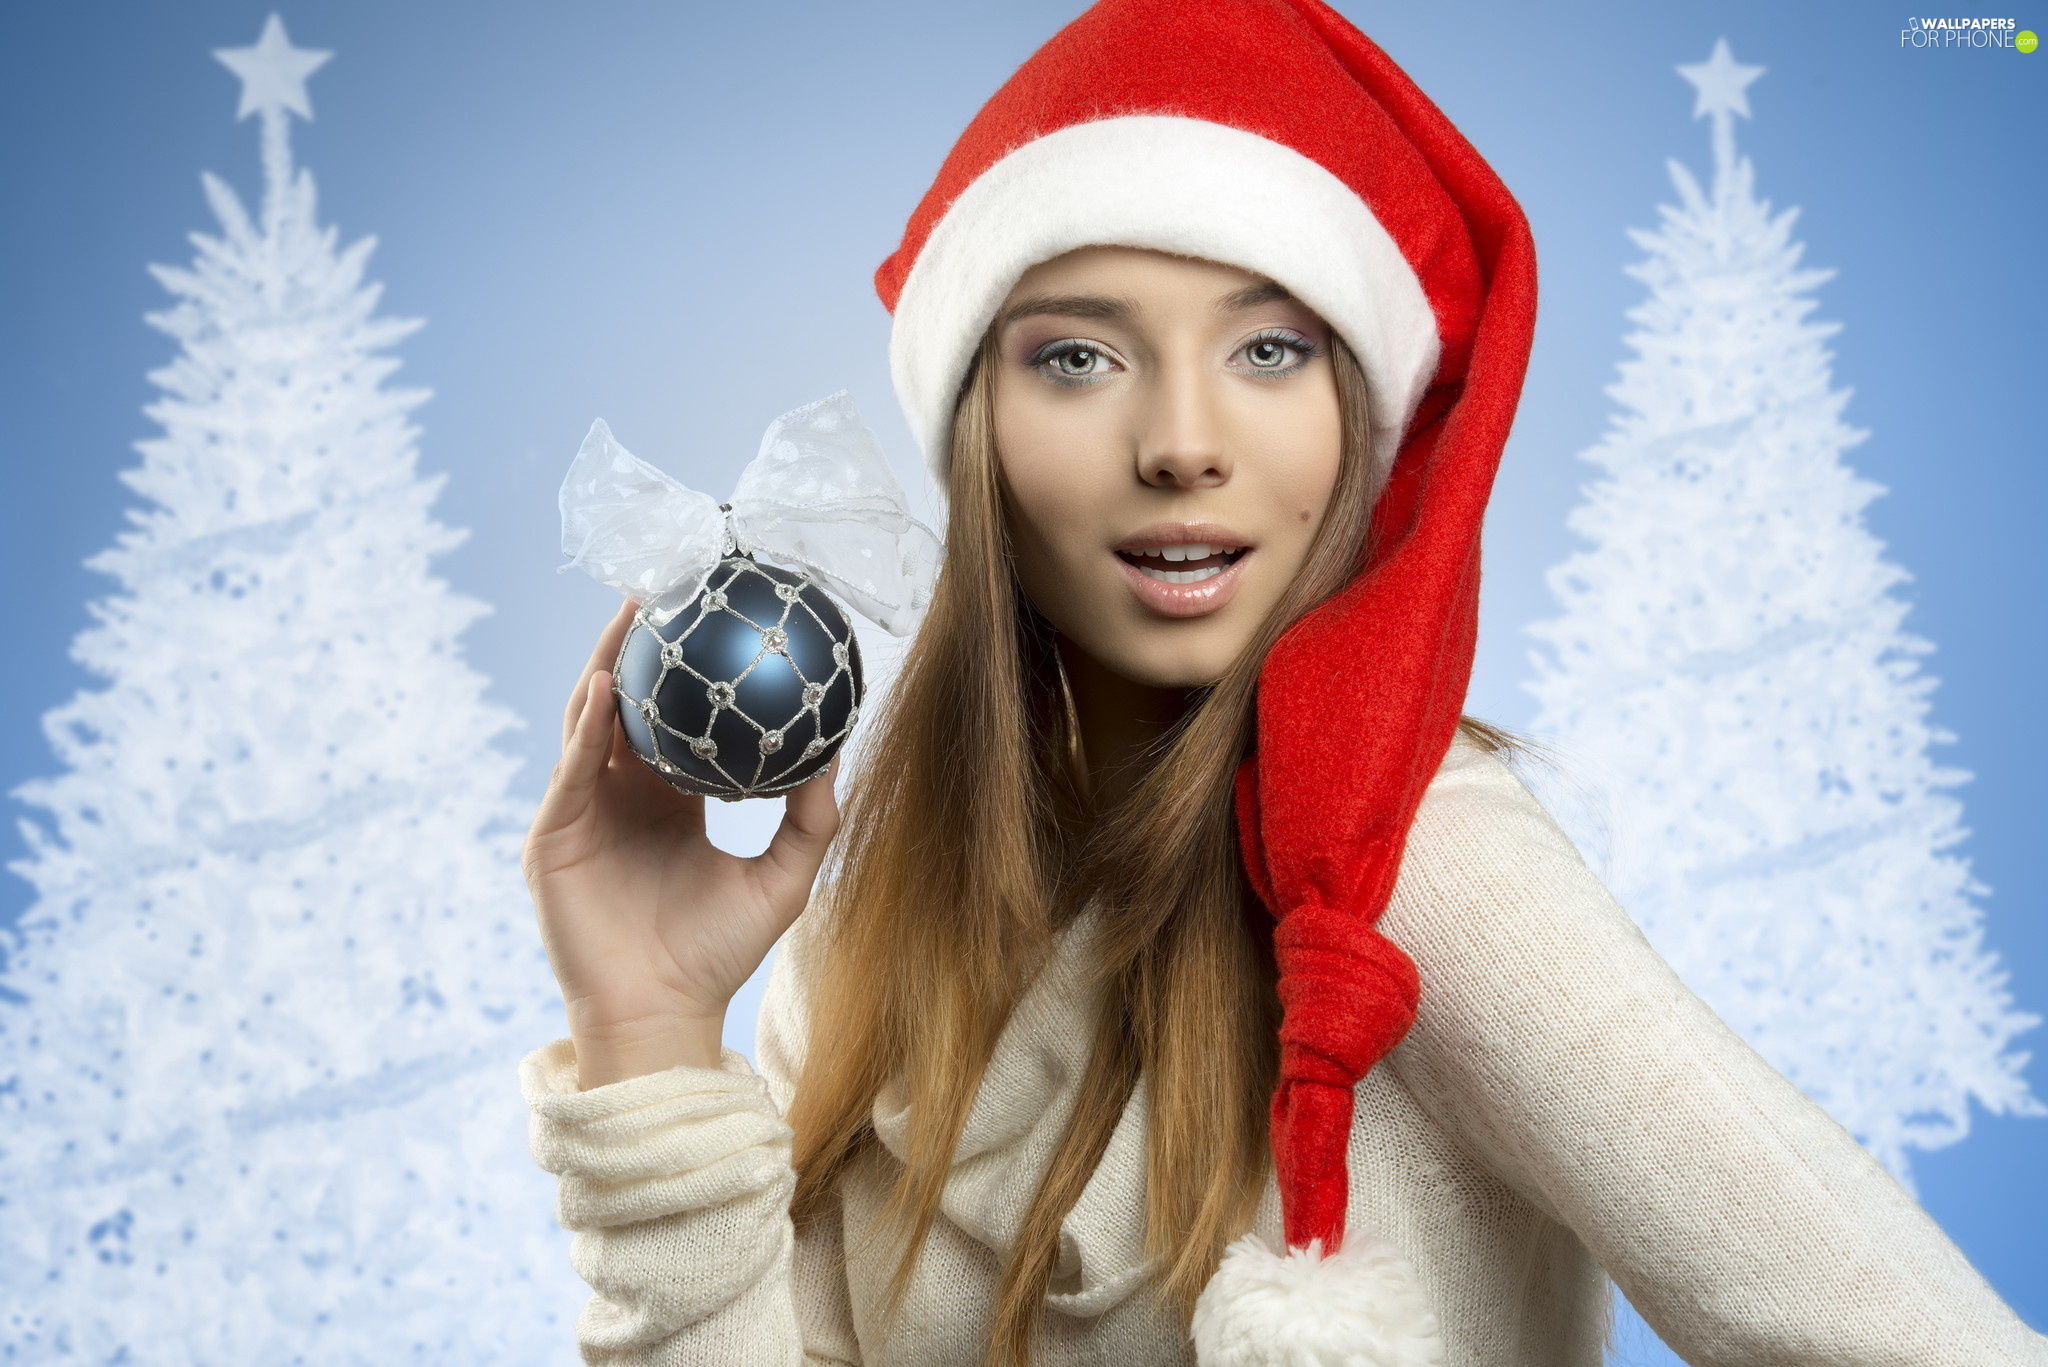 Nicholas, bauble, Women, Hat, longhaired